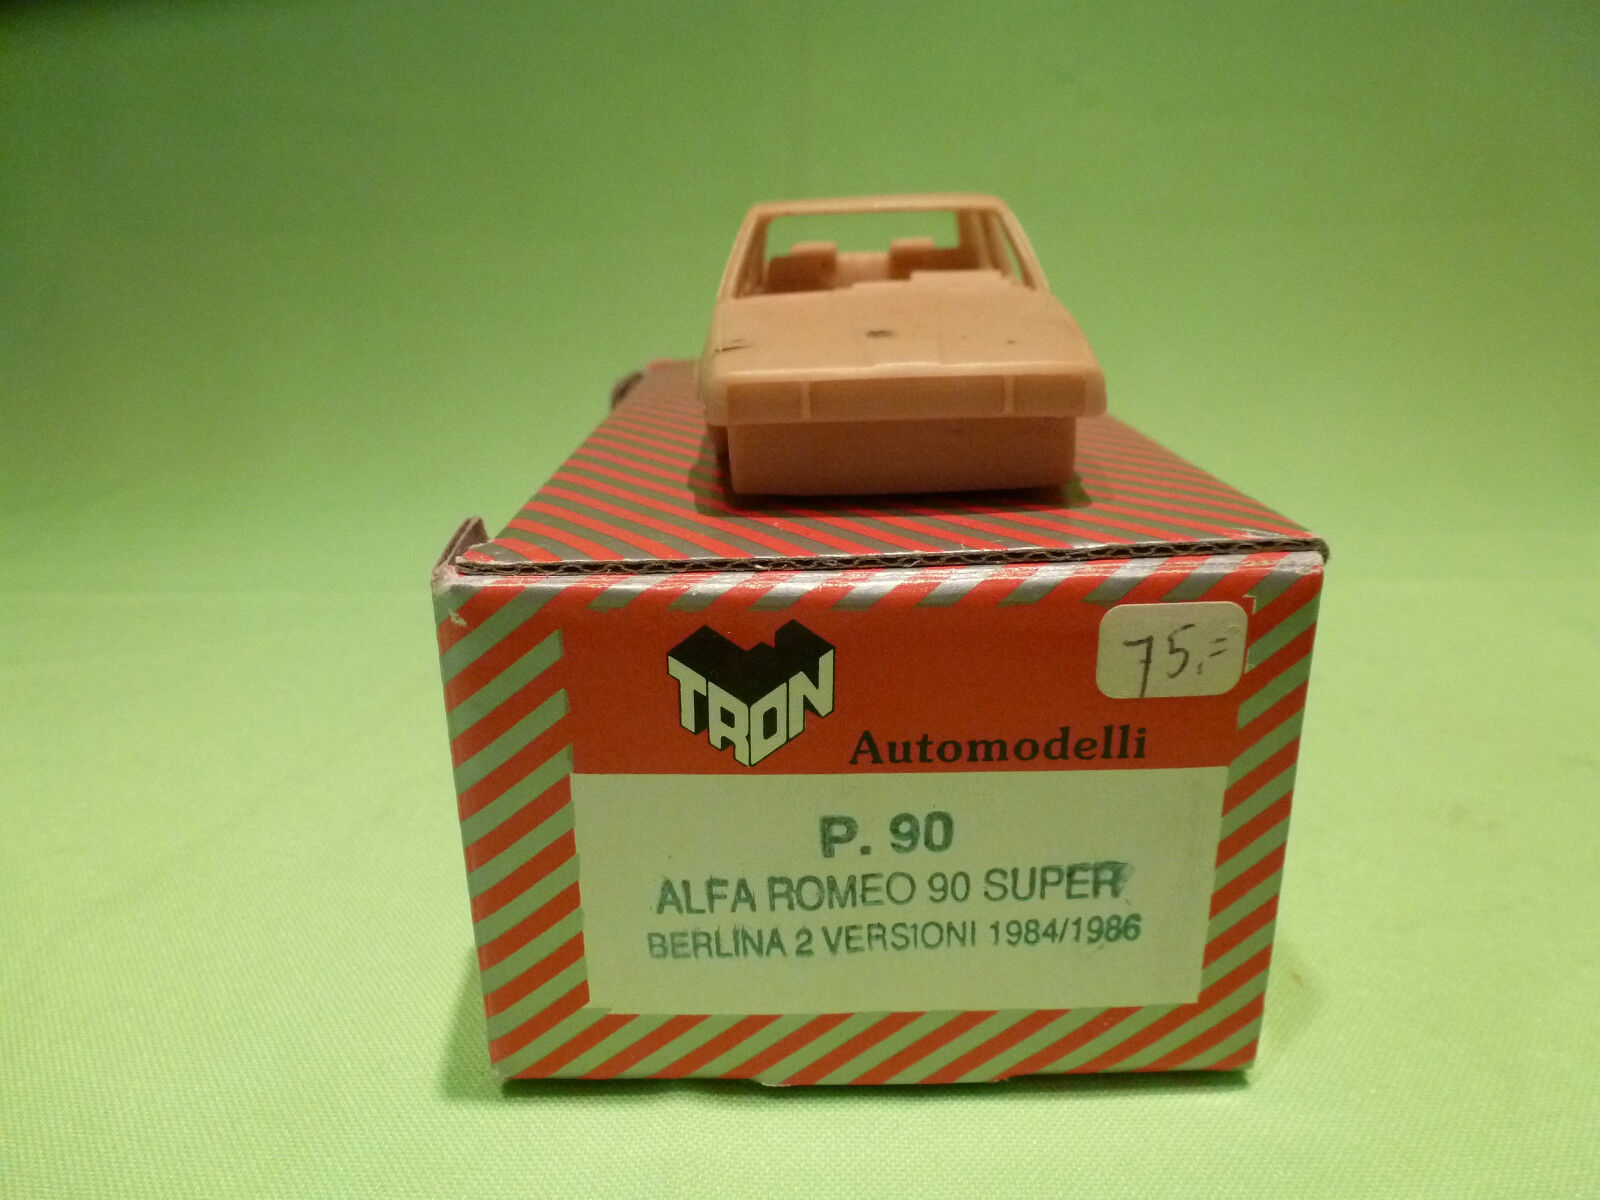 TRON  1 43  ALFA 90  BERLINA 2 VERSIONI   - UNBUILT KIT  -   IN GOOD CONDITION